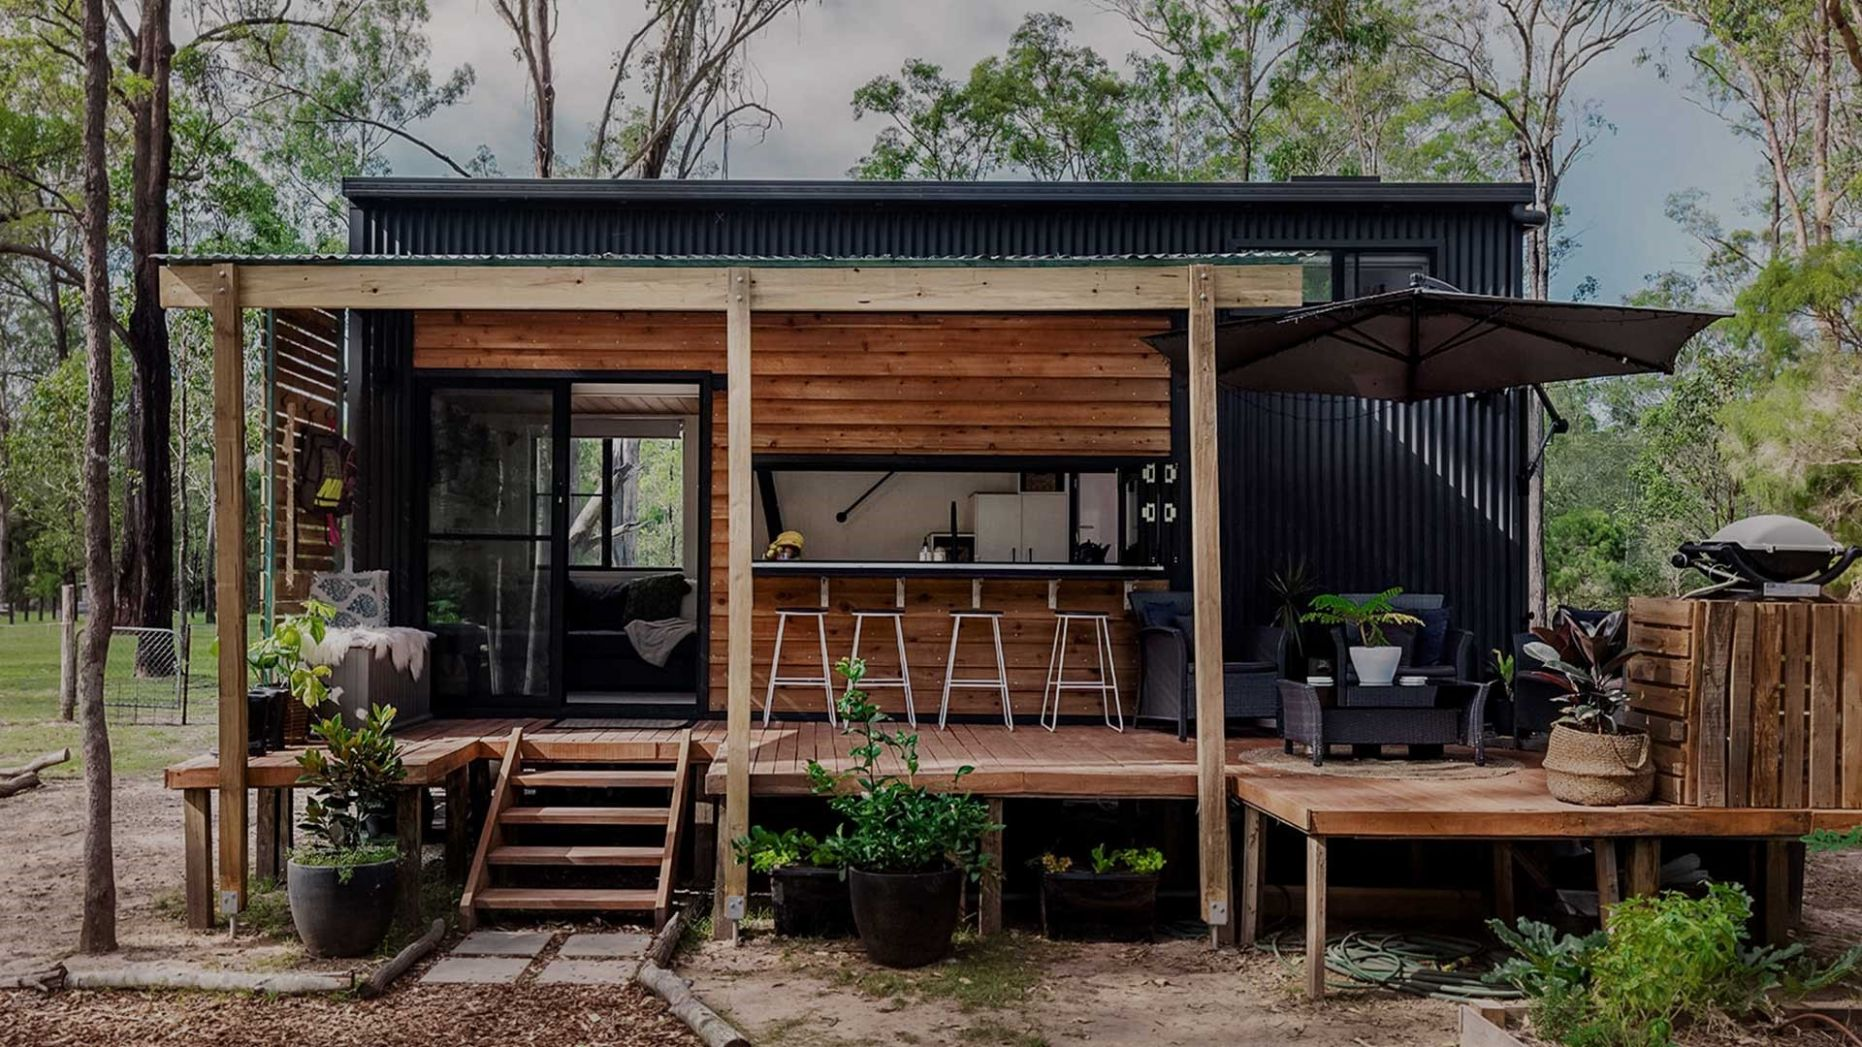 Tiny Houses in Australia for Sale - Aussie Tiny Houses - tiny house qld